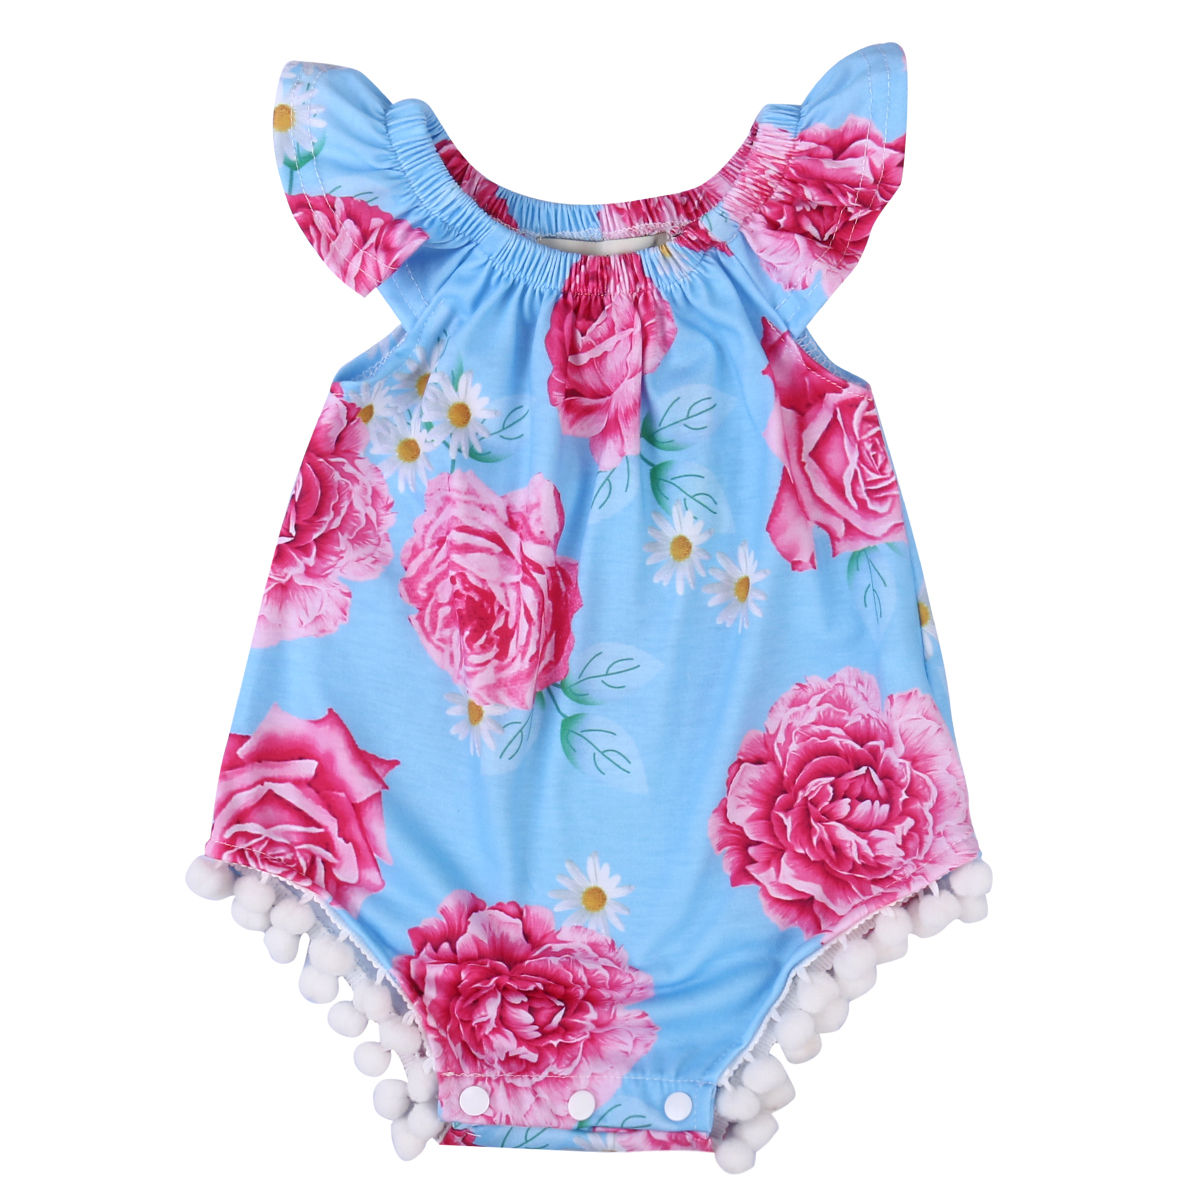 Lovely Newborn Baby Girl Clothes Floral Romper 2017 Summer Sleeveless Infant Bebes Toddler Kids Jumpsuit Outfit Sunsuit 0-24M 2017 cotton toddler kids girls clothes sleeveless floral romper baby girl rompers playsuit one pieces outfit kids tracksuit